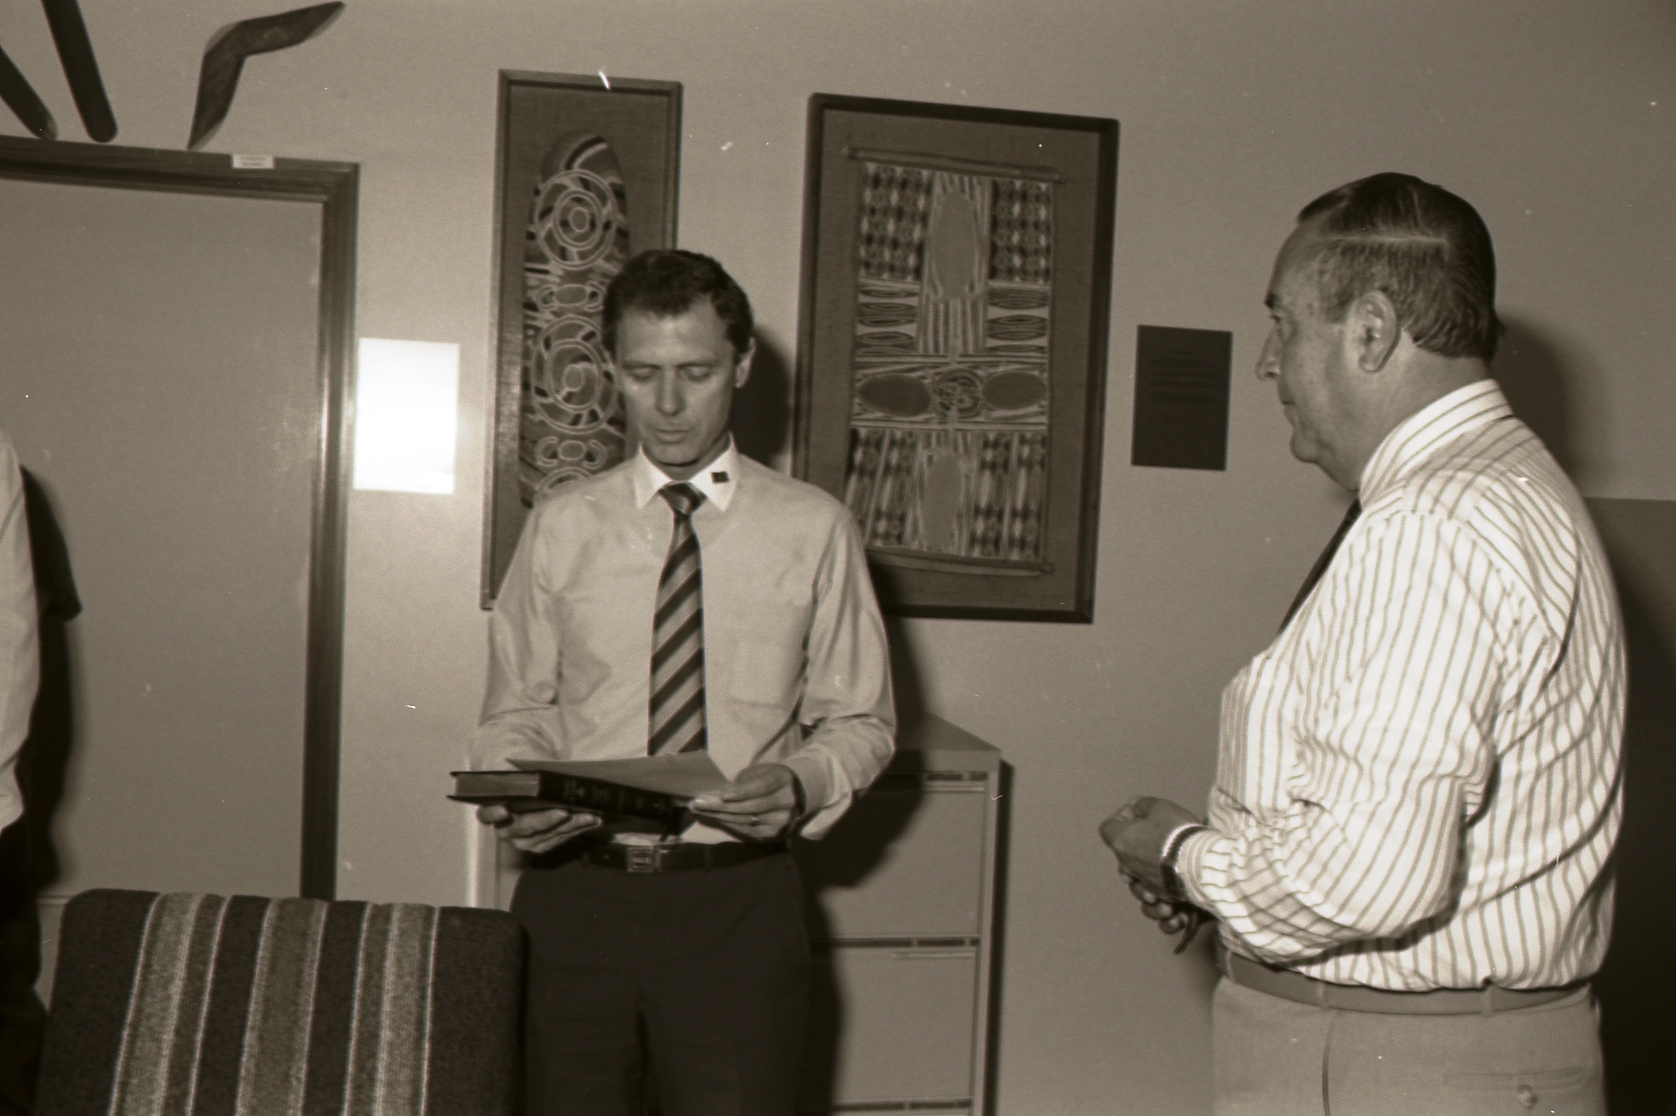 [Swearing in of Chief Minister Perron, 14 July 1988] Image courtesy of Northern Territory Archives Service, Department of the Chief Minister, NTRS 3823 P1, BW 2735, Item 1